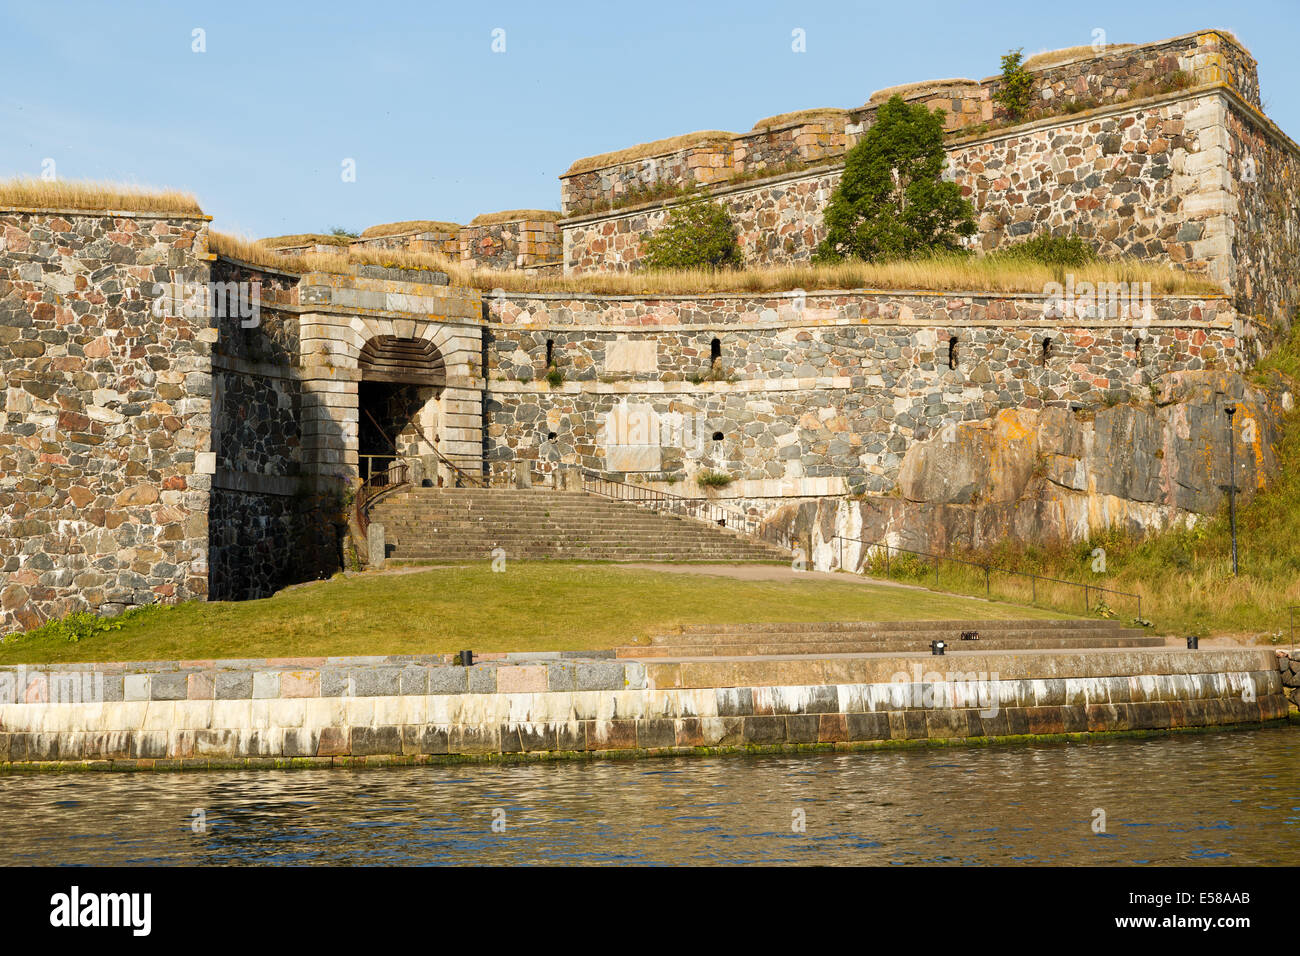 King's Gate is the historical landing stage of Suomenlinna sea fortress, protected by the World Heritage Fund - Stock Image